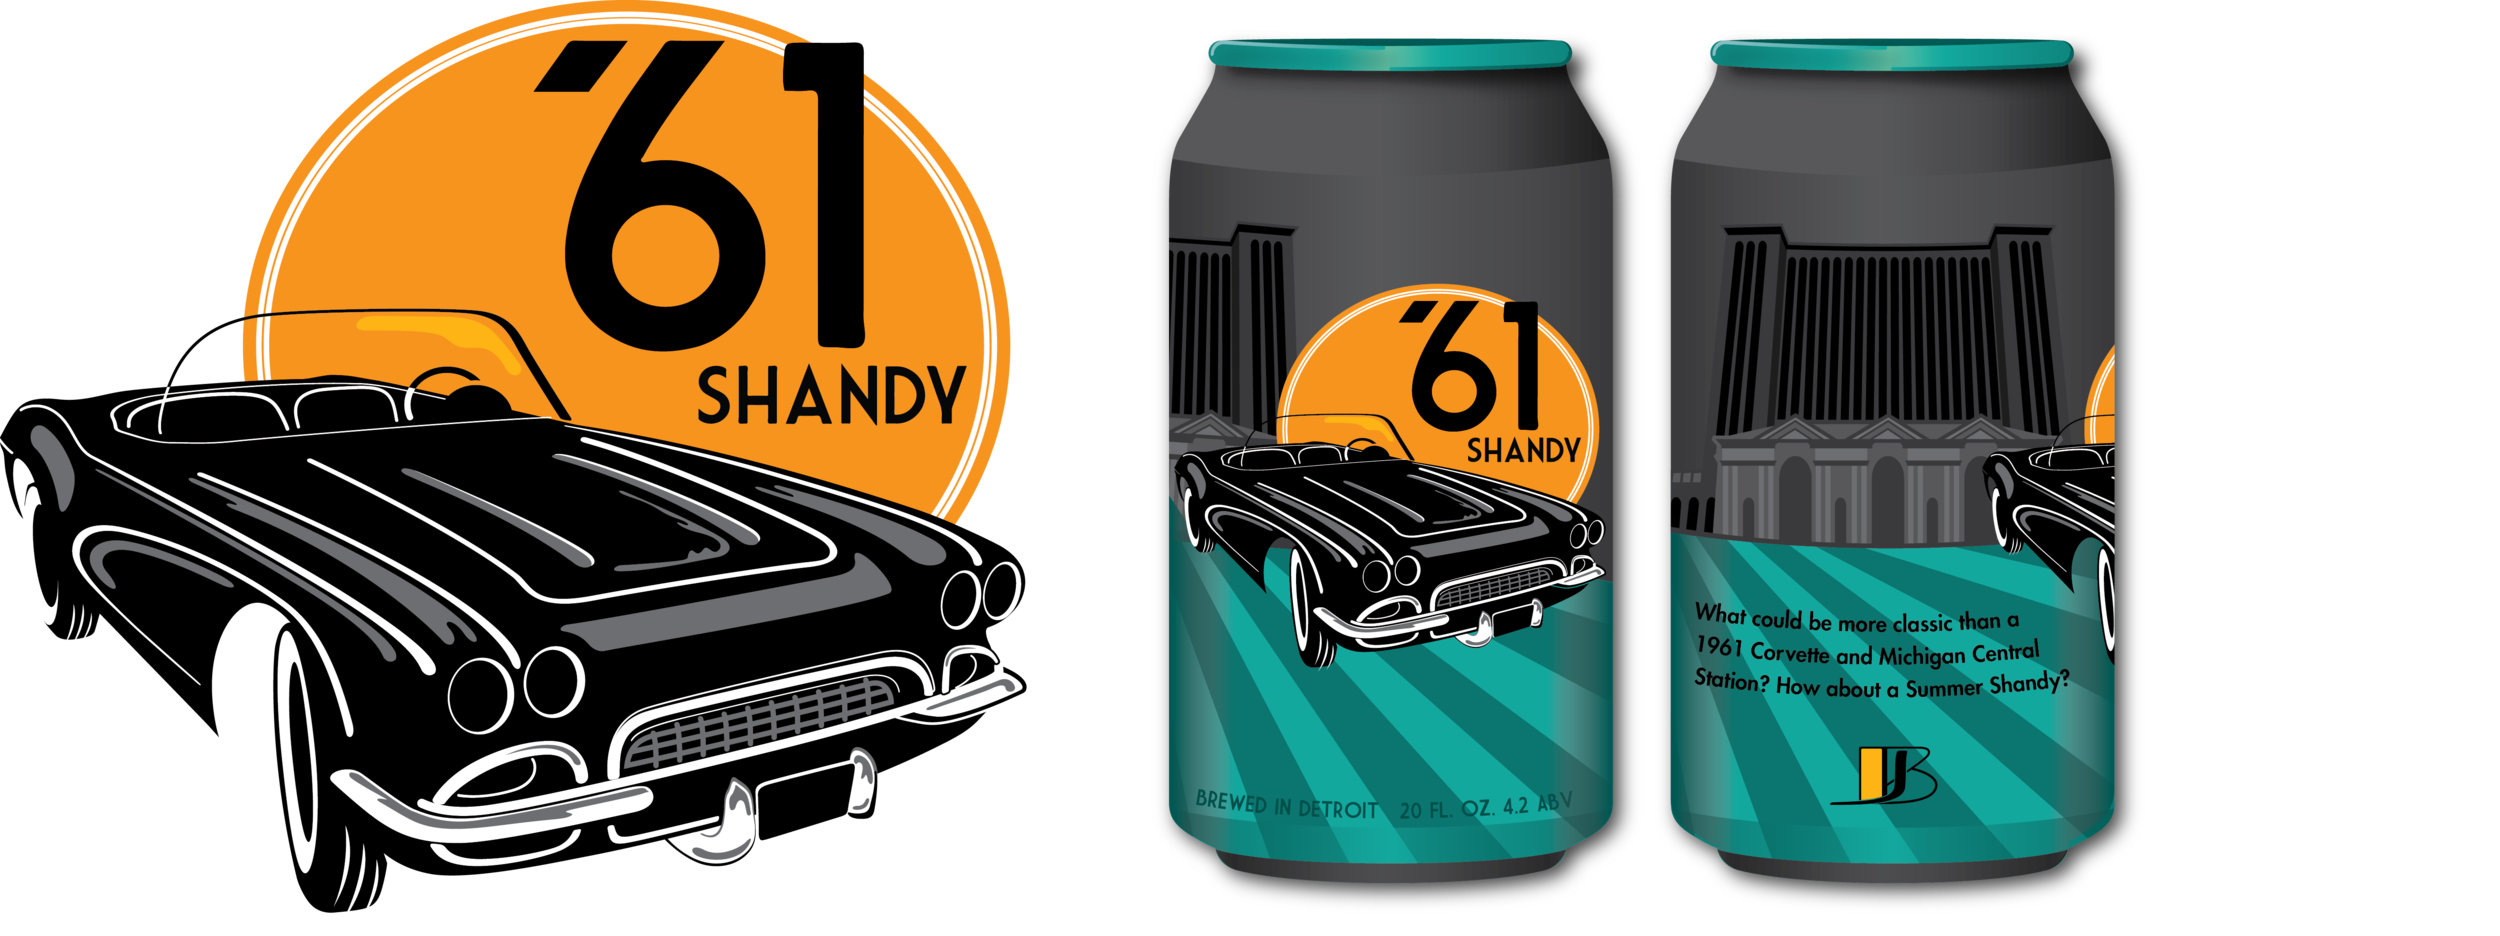 What could be more classic than a 1961 Corvette and Michigan Central Station? Don't let the Michigan summer heat get you down. Cool off with a '61 Shandy. - In progress